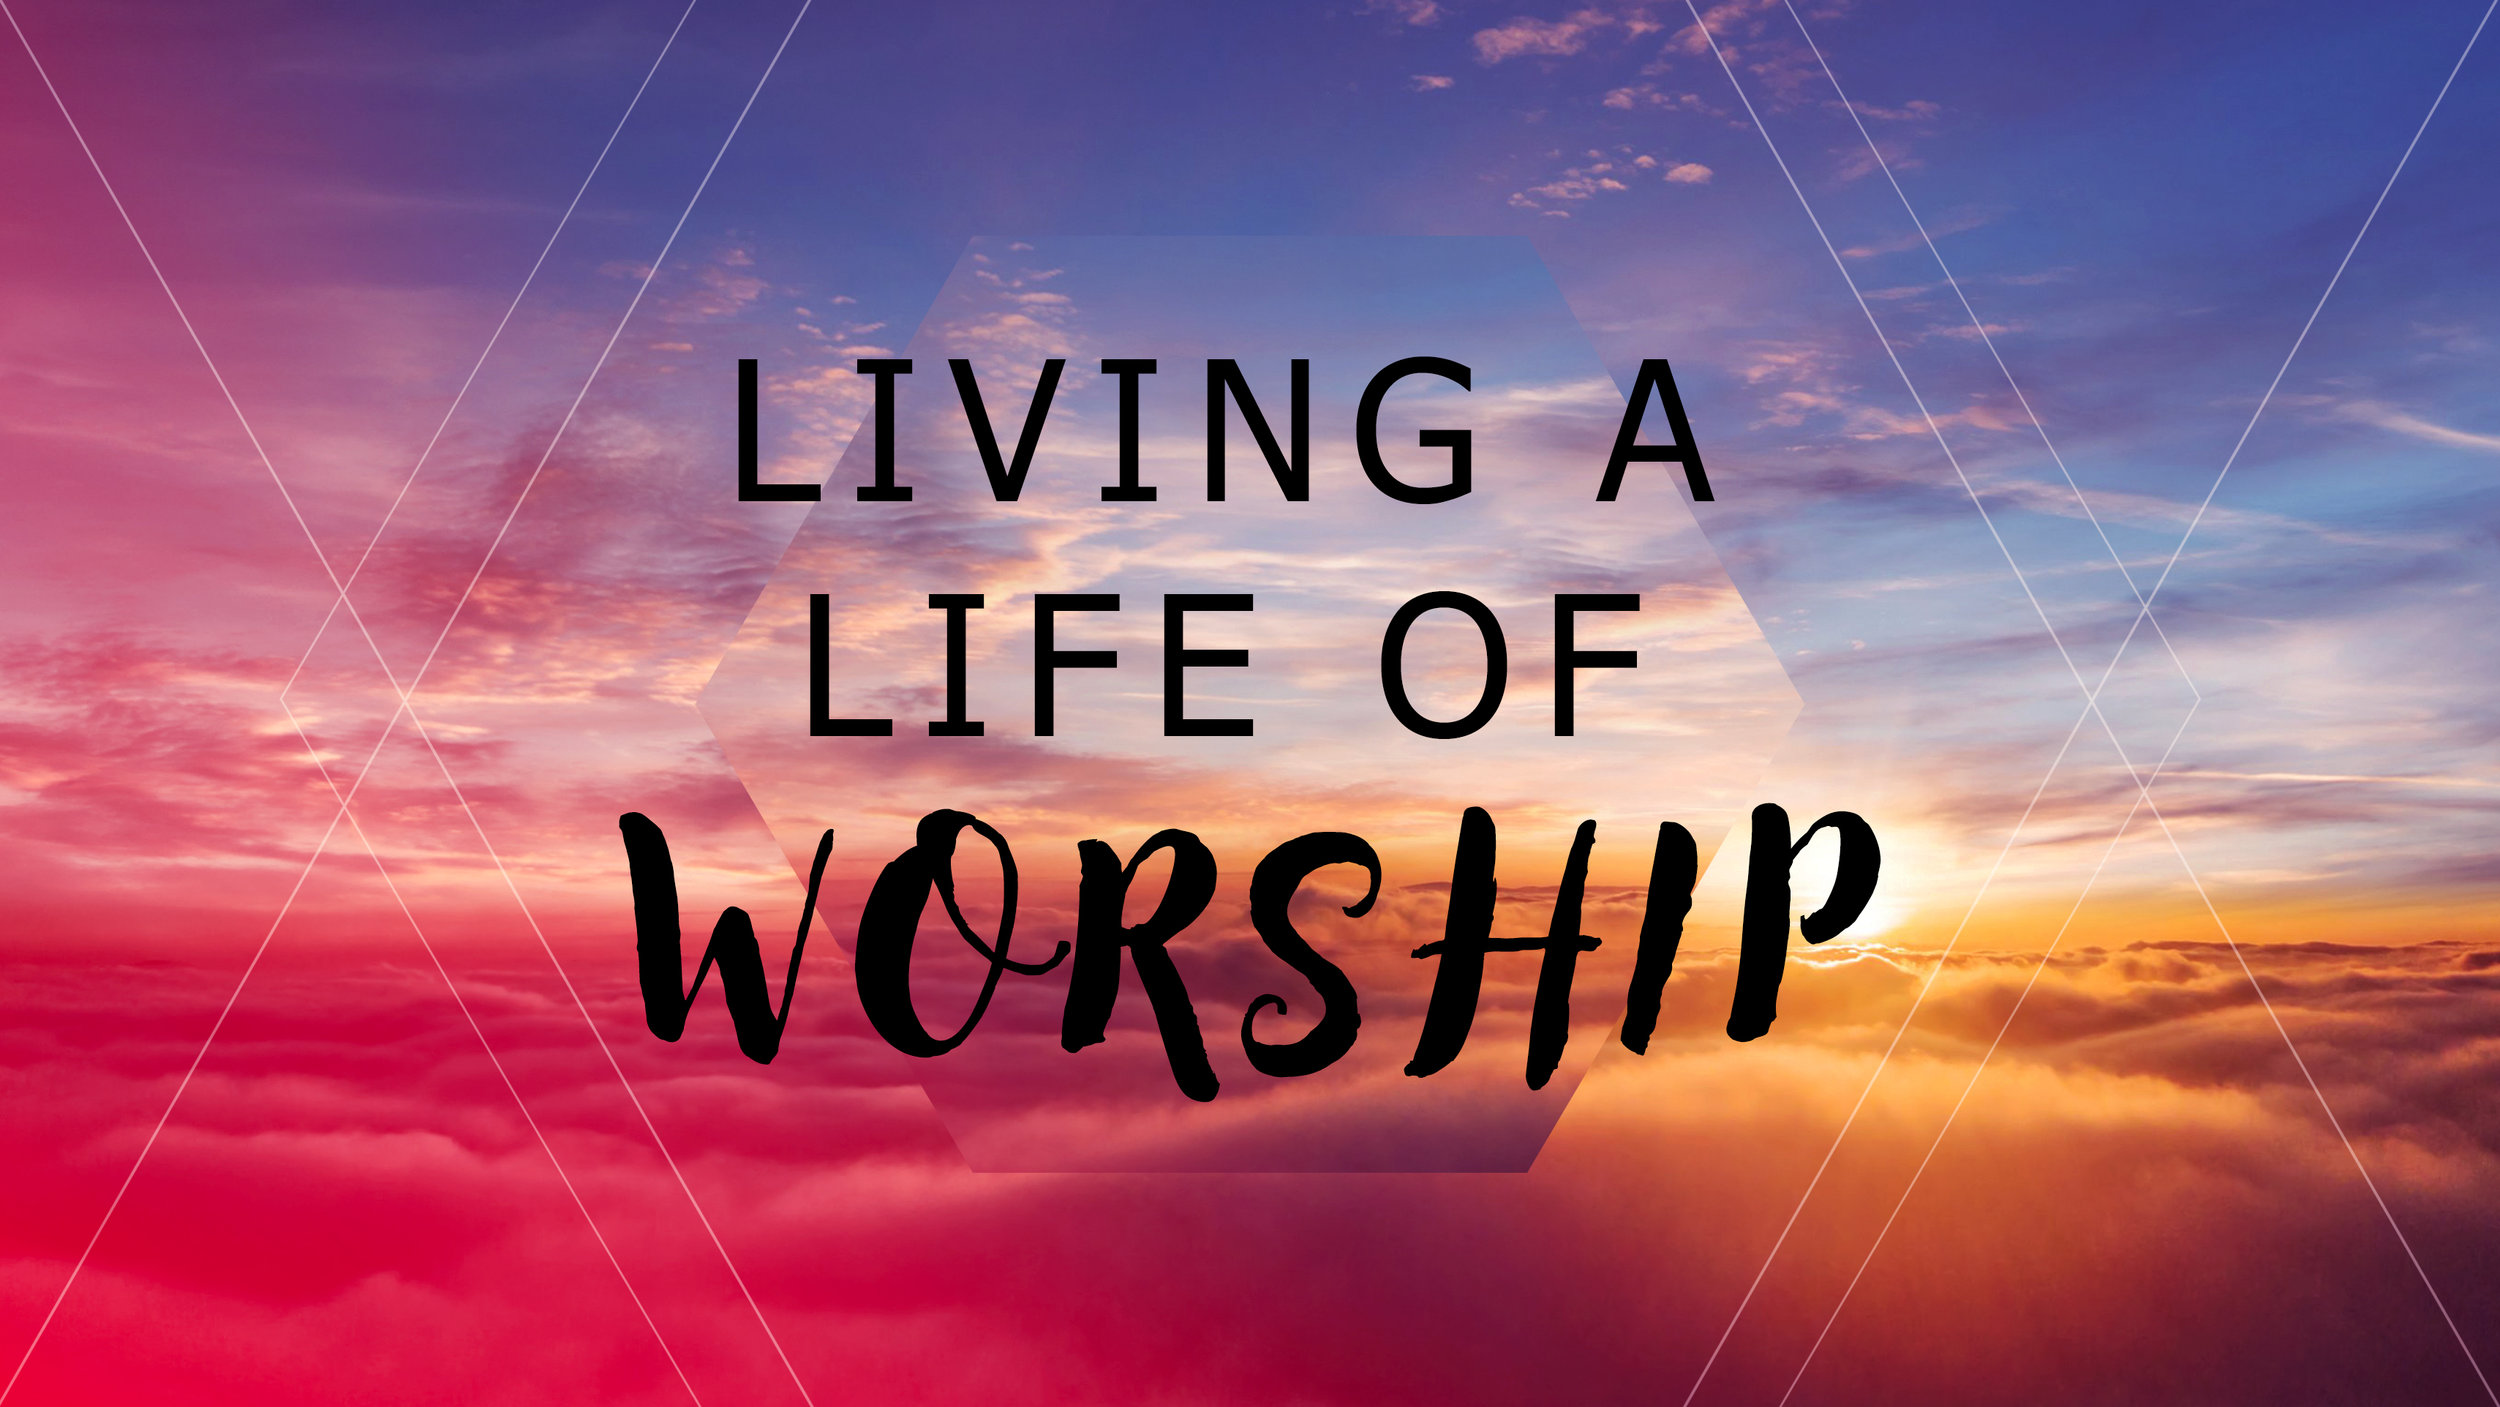 Living a Life of Worship BANNER.jpg